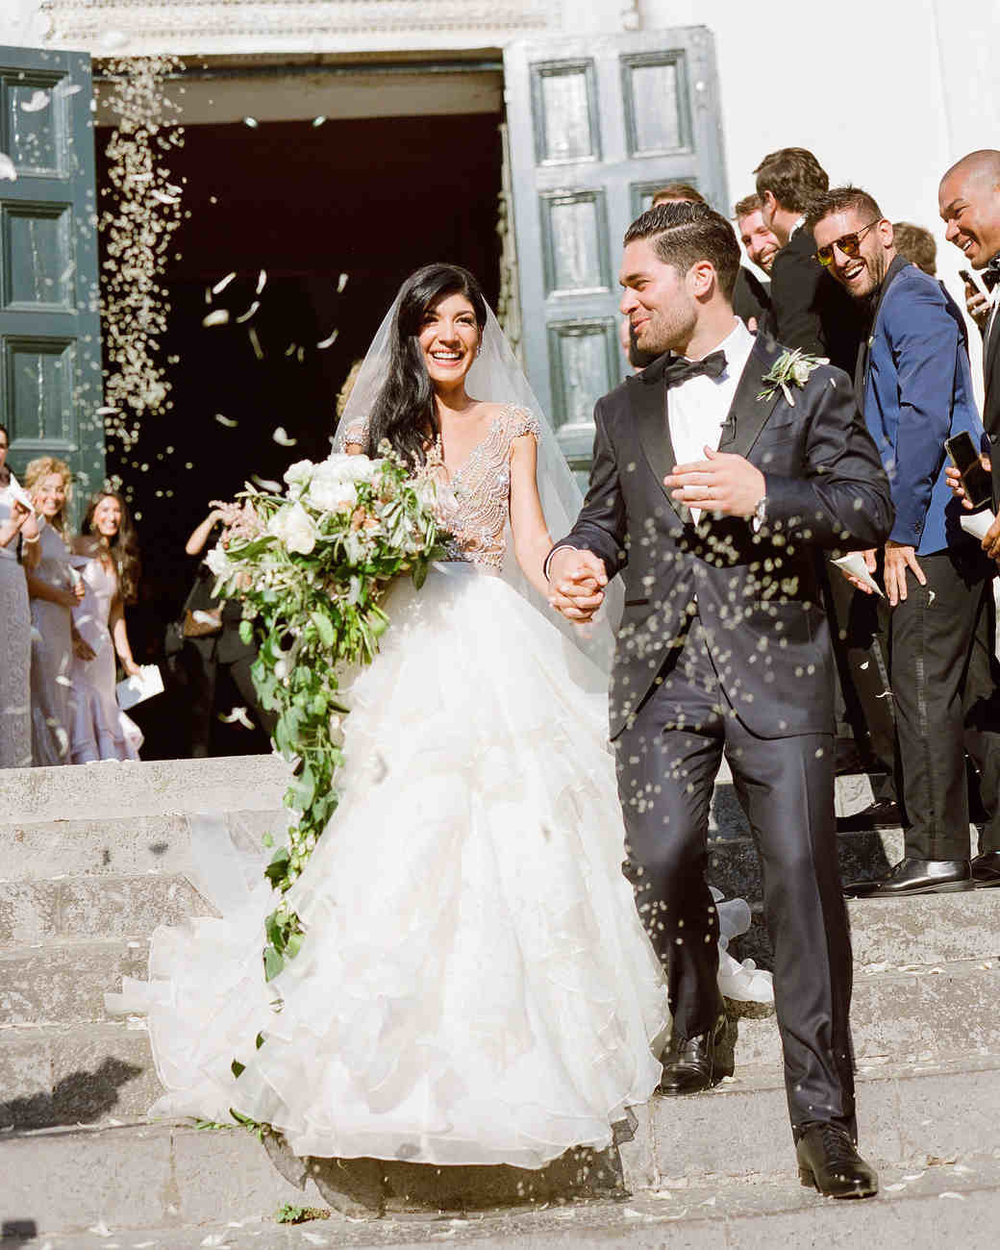 lisa-greg-italy-wedding-recessional-church-103312970_vert.jpg